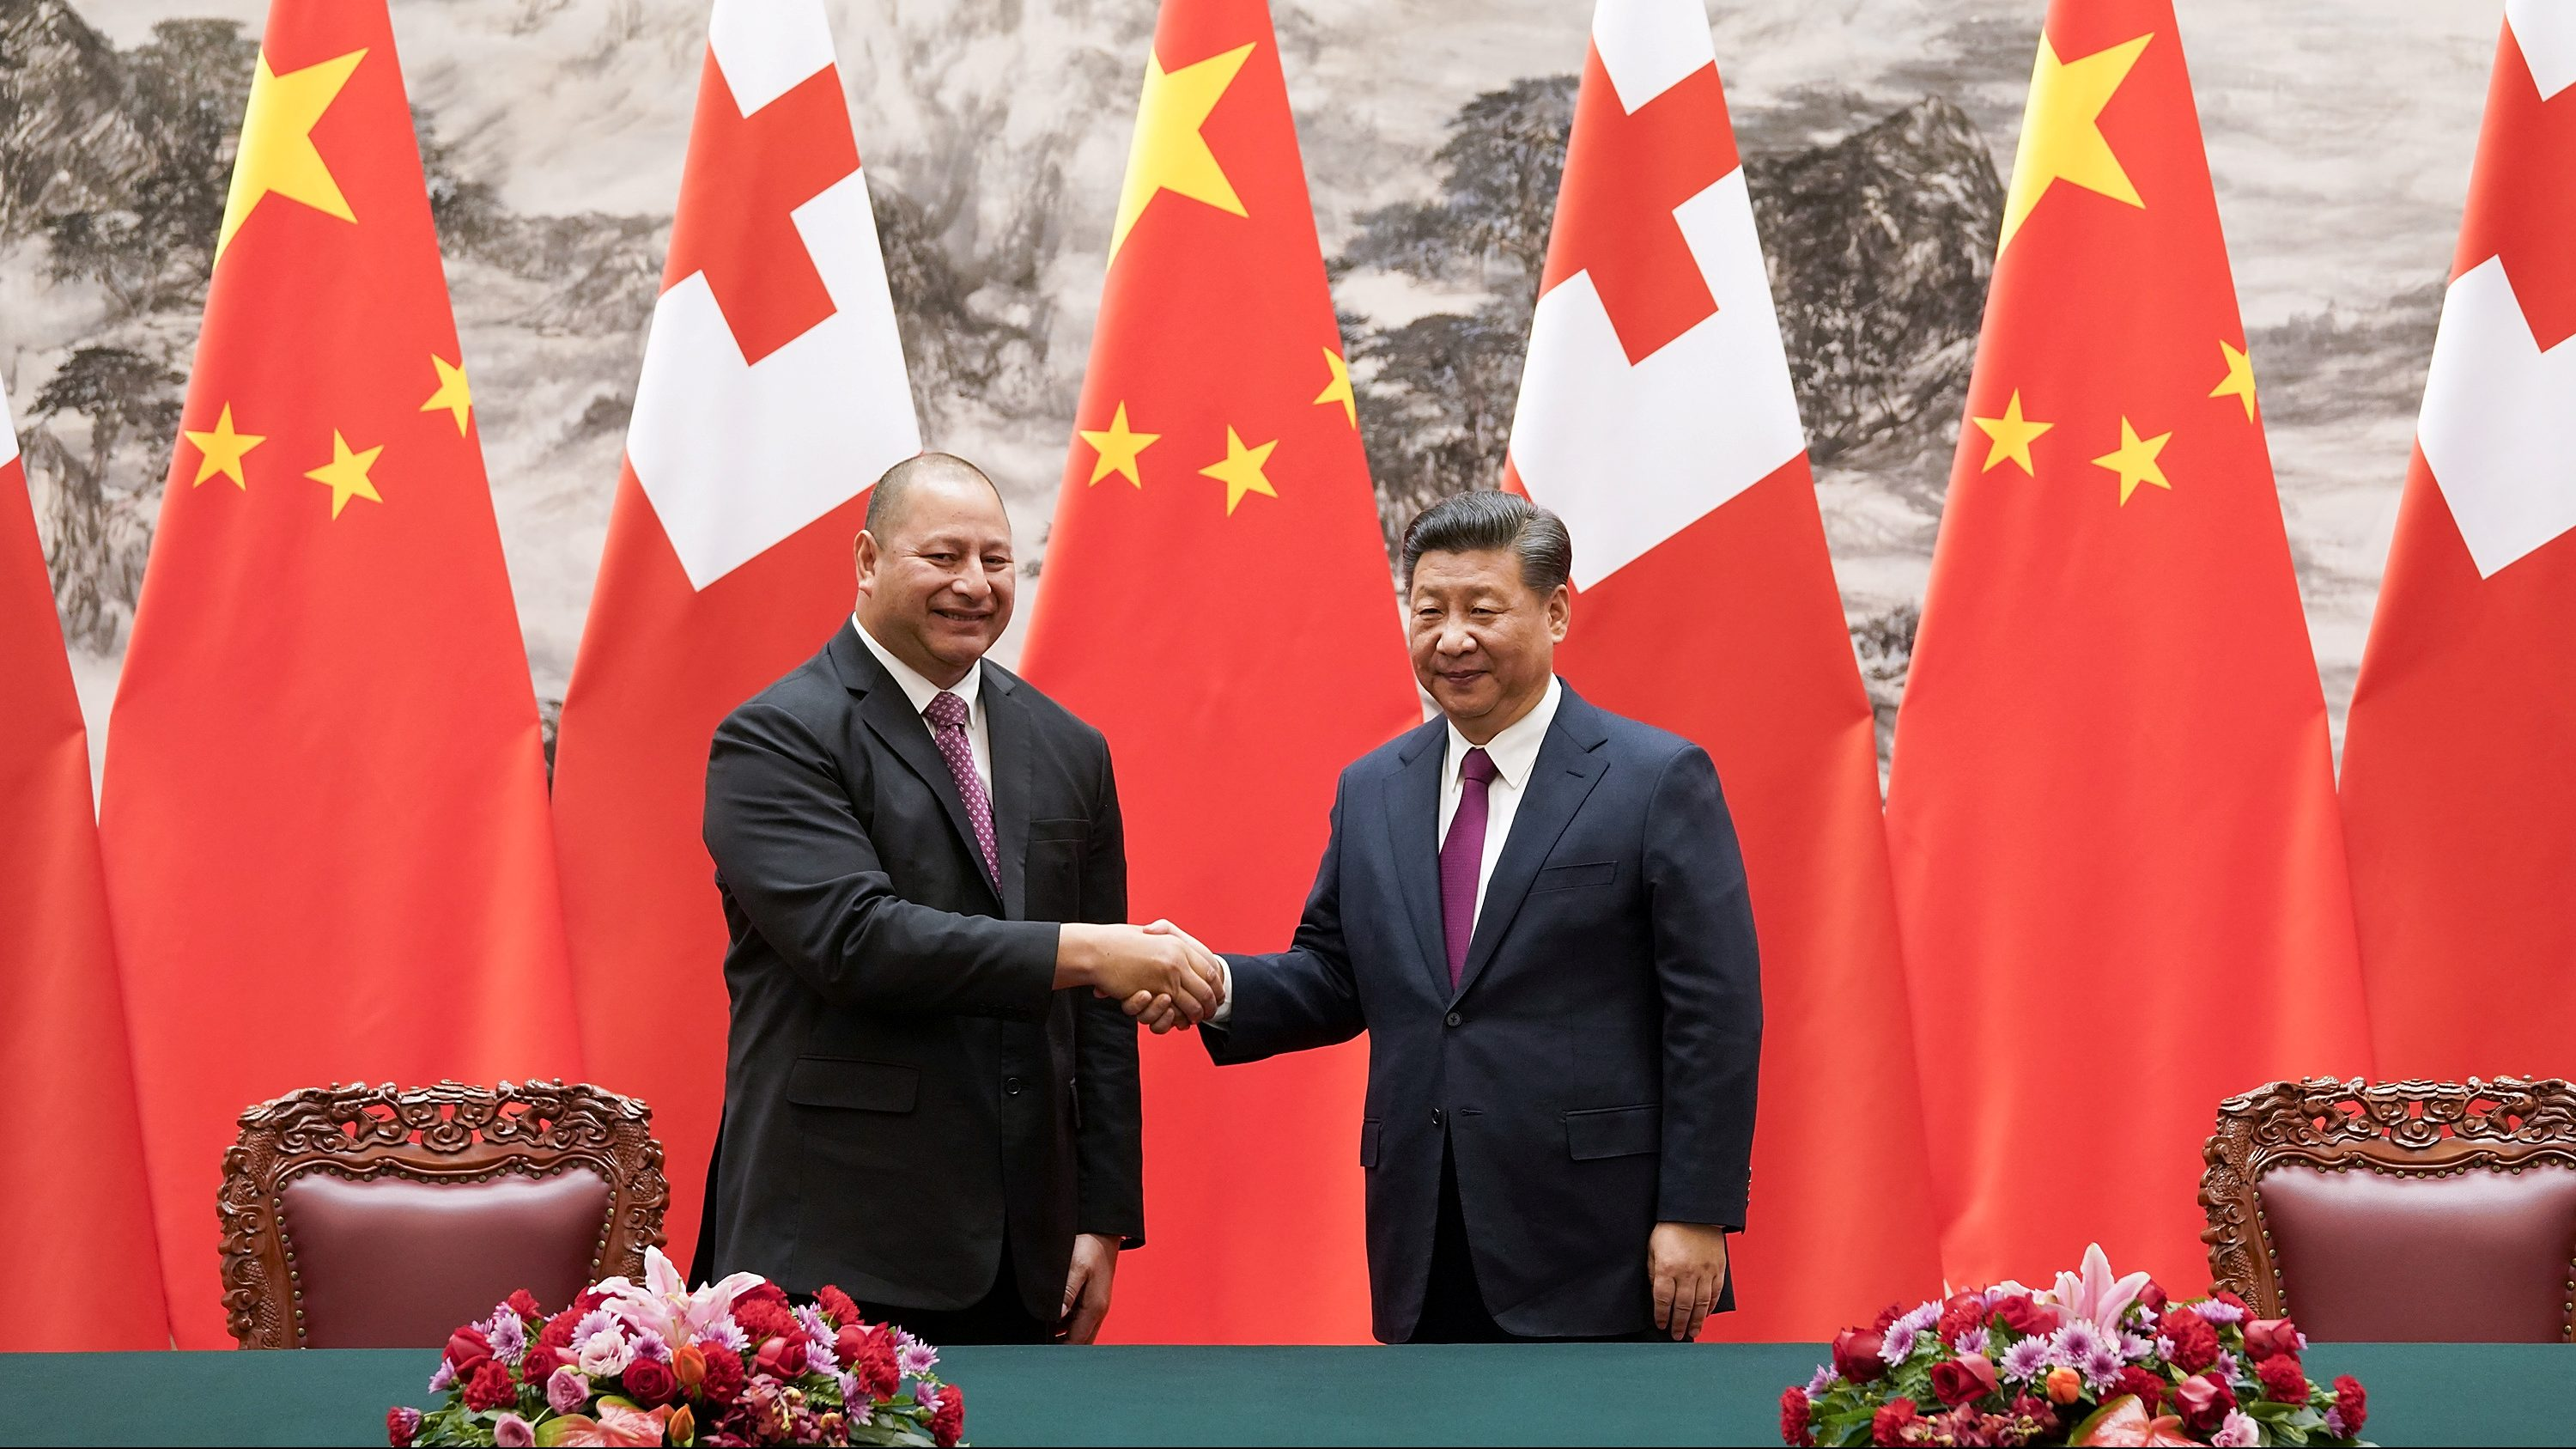 King Tupou VI (L) of Tonga shakes hands with Chinese President Xi Jinping (R) after a signing ceremonyat The Great Hall Of The People, in Beijing, China, March 1, 2018.